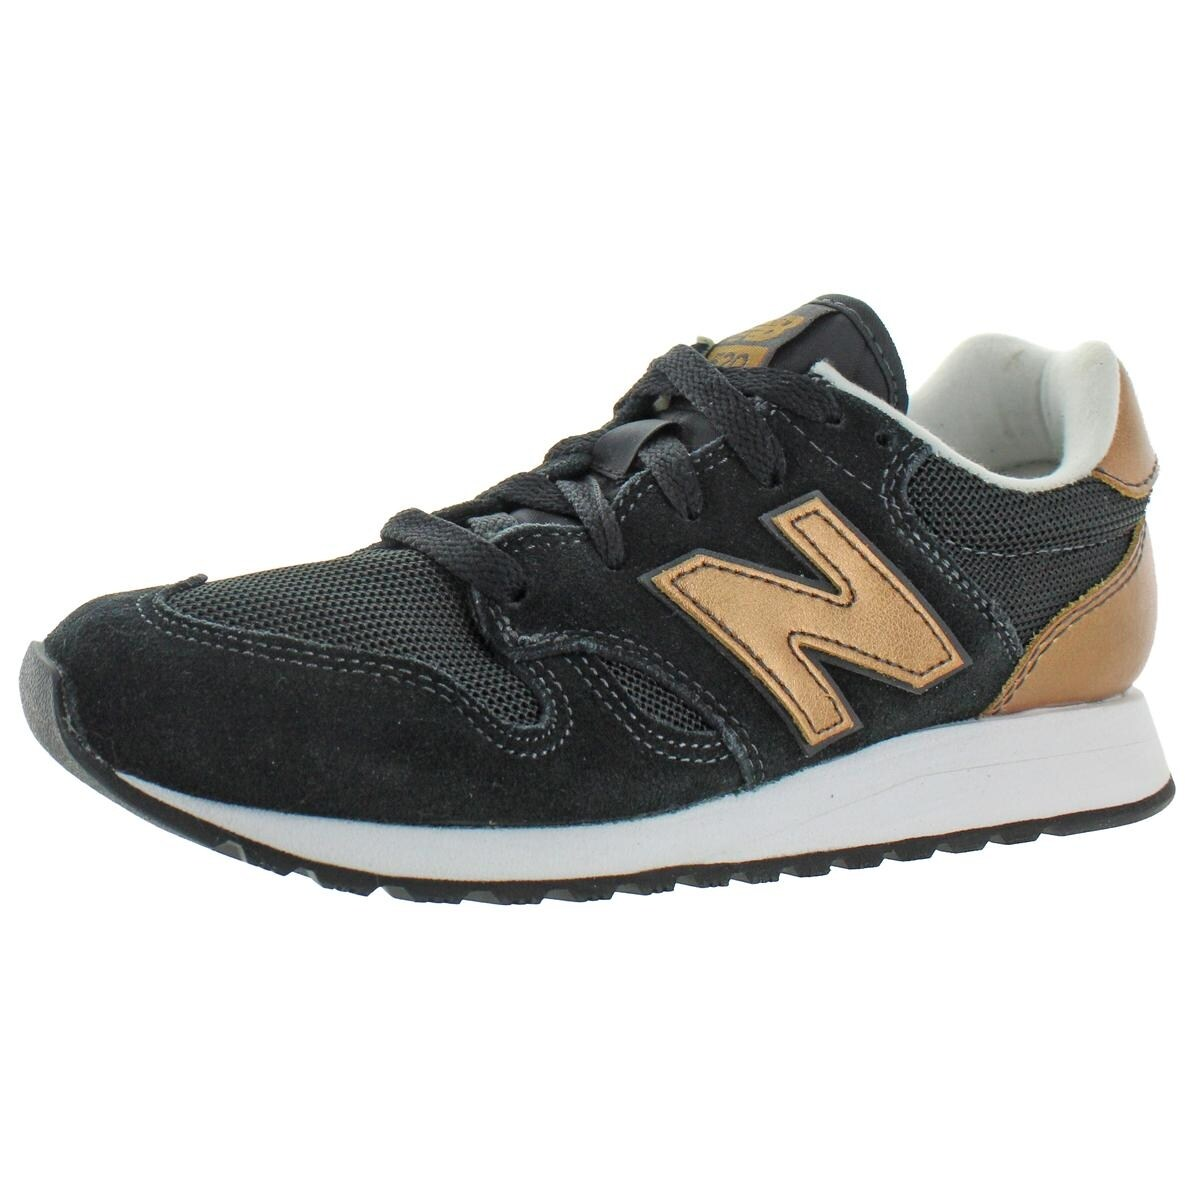 New Balance Women's WL520 Suede Casual Lifestyle Athletic Sneakers Shoes